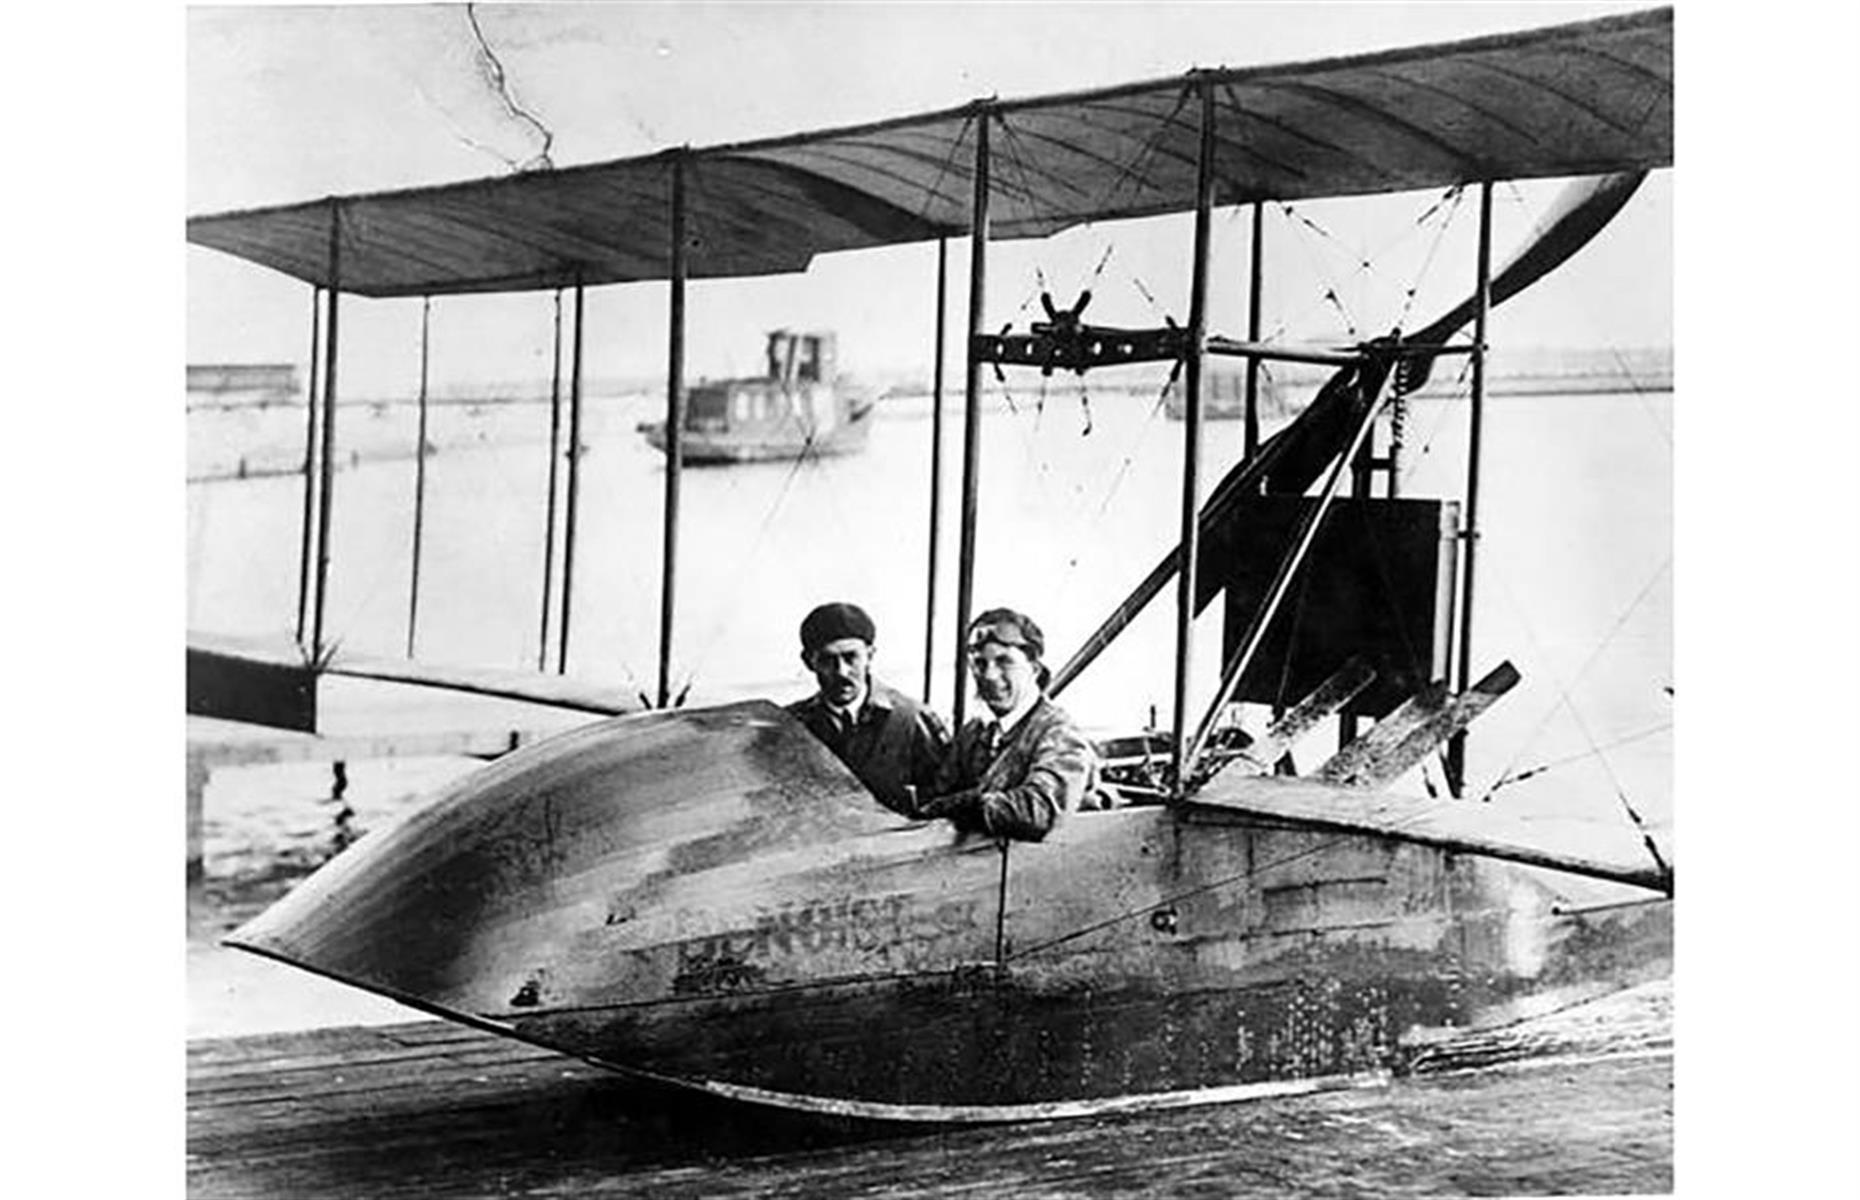 Slide 2 of 35: This rather modest looking flying boat was in fact responsible for the world's first scheduled airline flight. Designed by Thomas W. Benoist, the Benoist Type XIV flew from St Petersburg to Tampa in Florida in 1914 and was one of two aircraft belonging to the St Petersburg–Tampa Airboat Line.